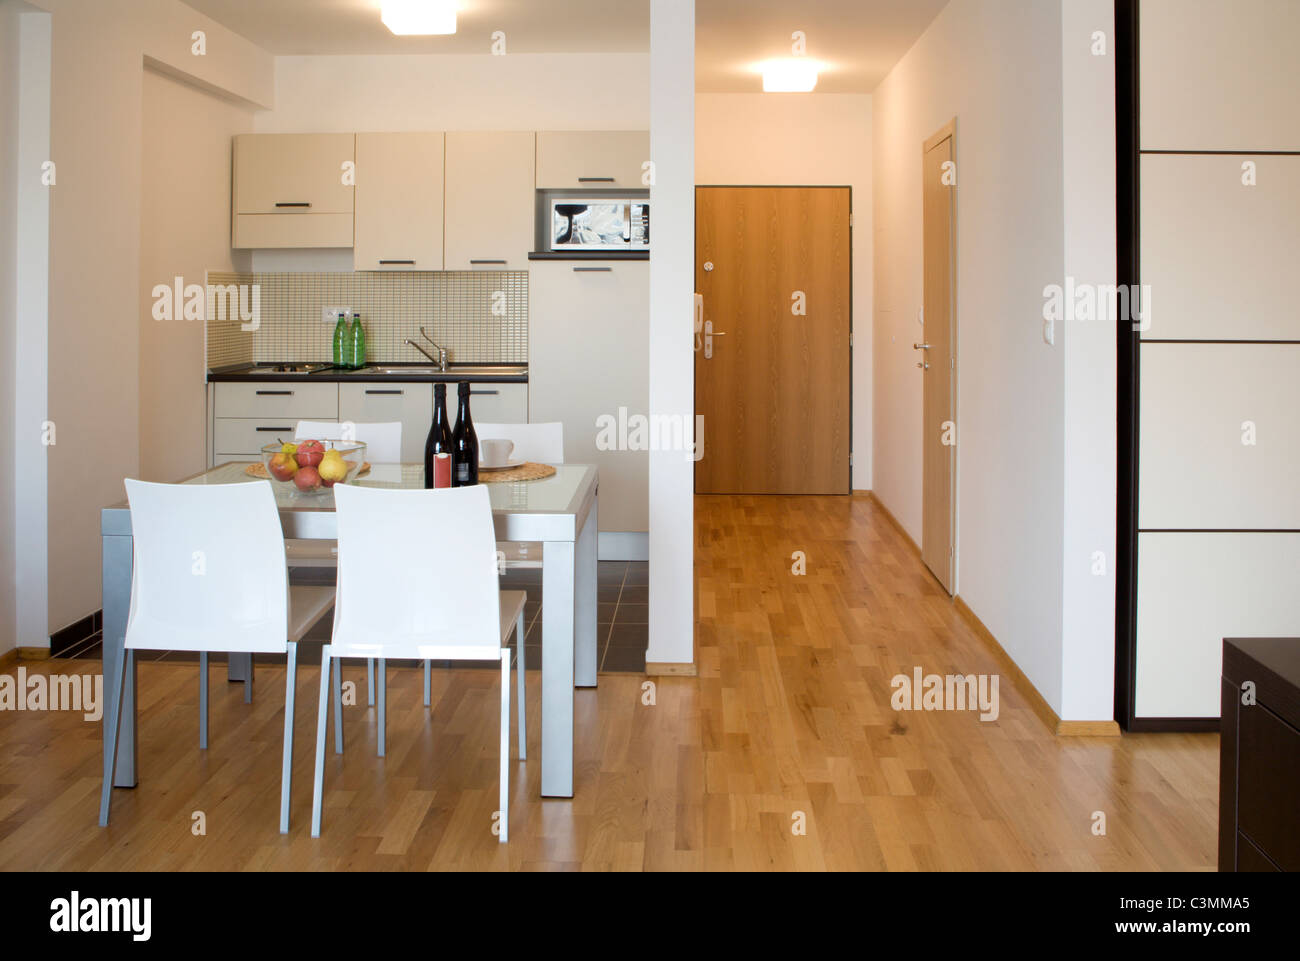 Apartment Interior Stockfotos & Apartment Interior Bilder - Alamy